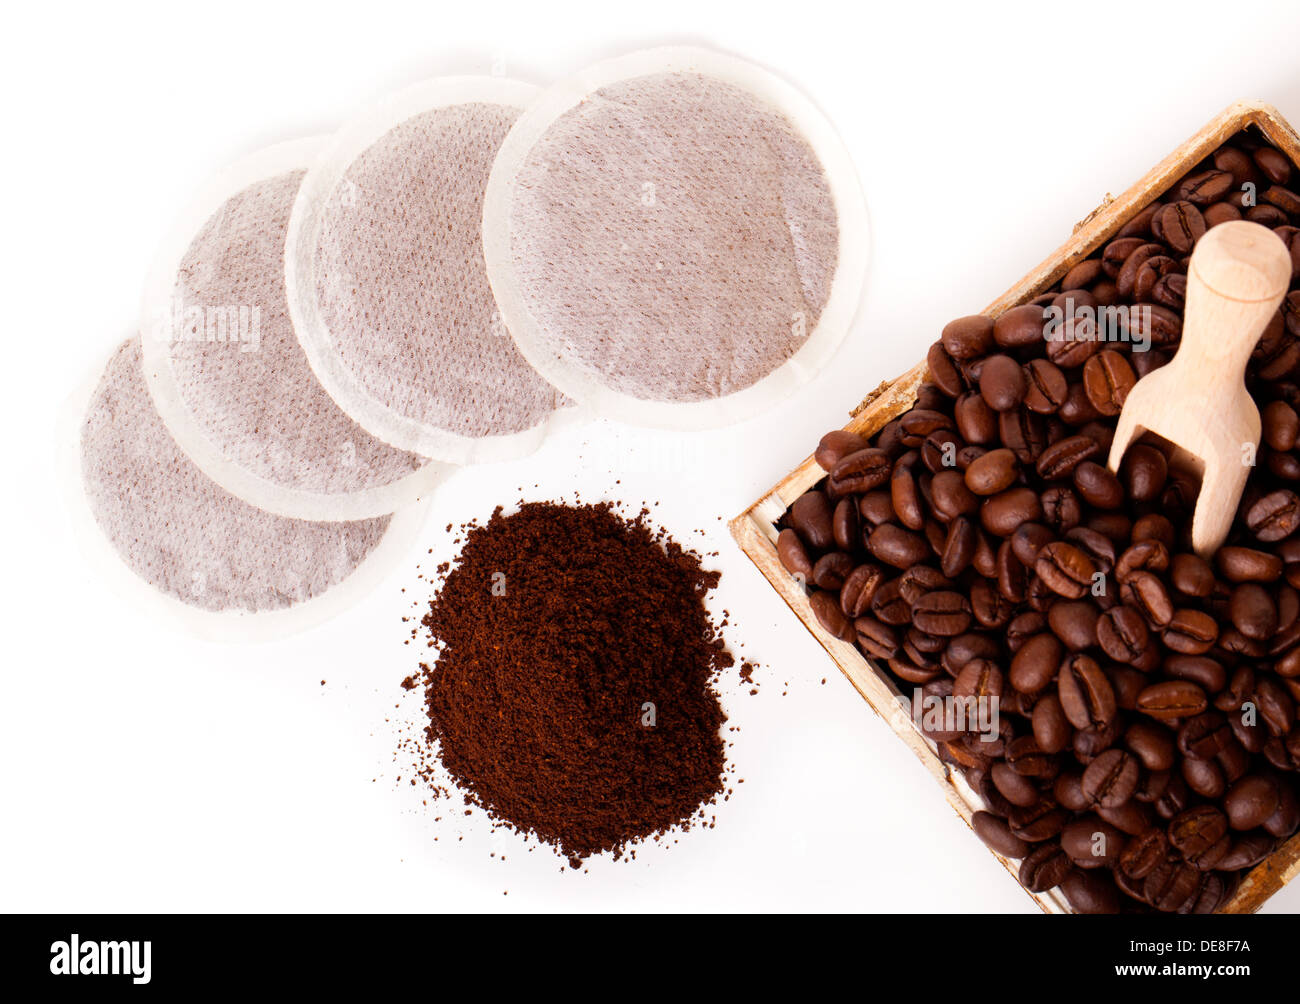 Fresh ground coffee with coffee Bean and coffee bags - Stock Image